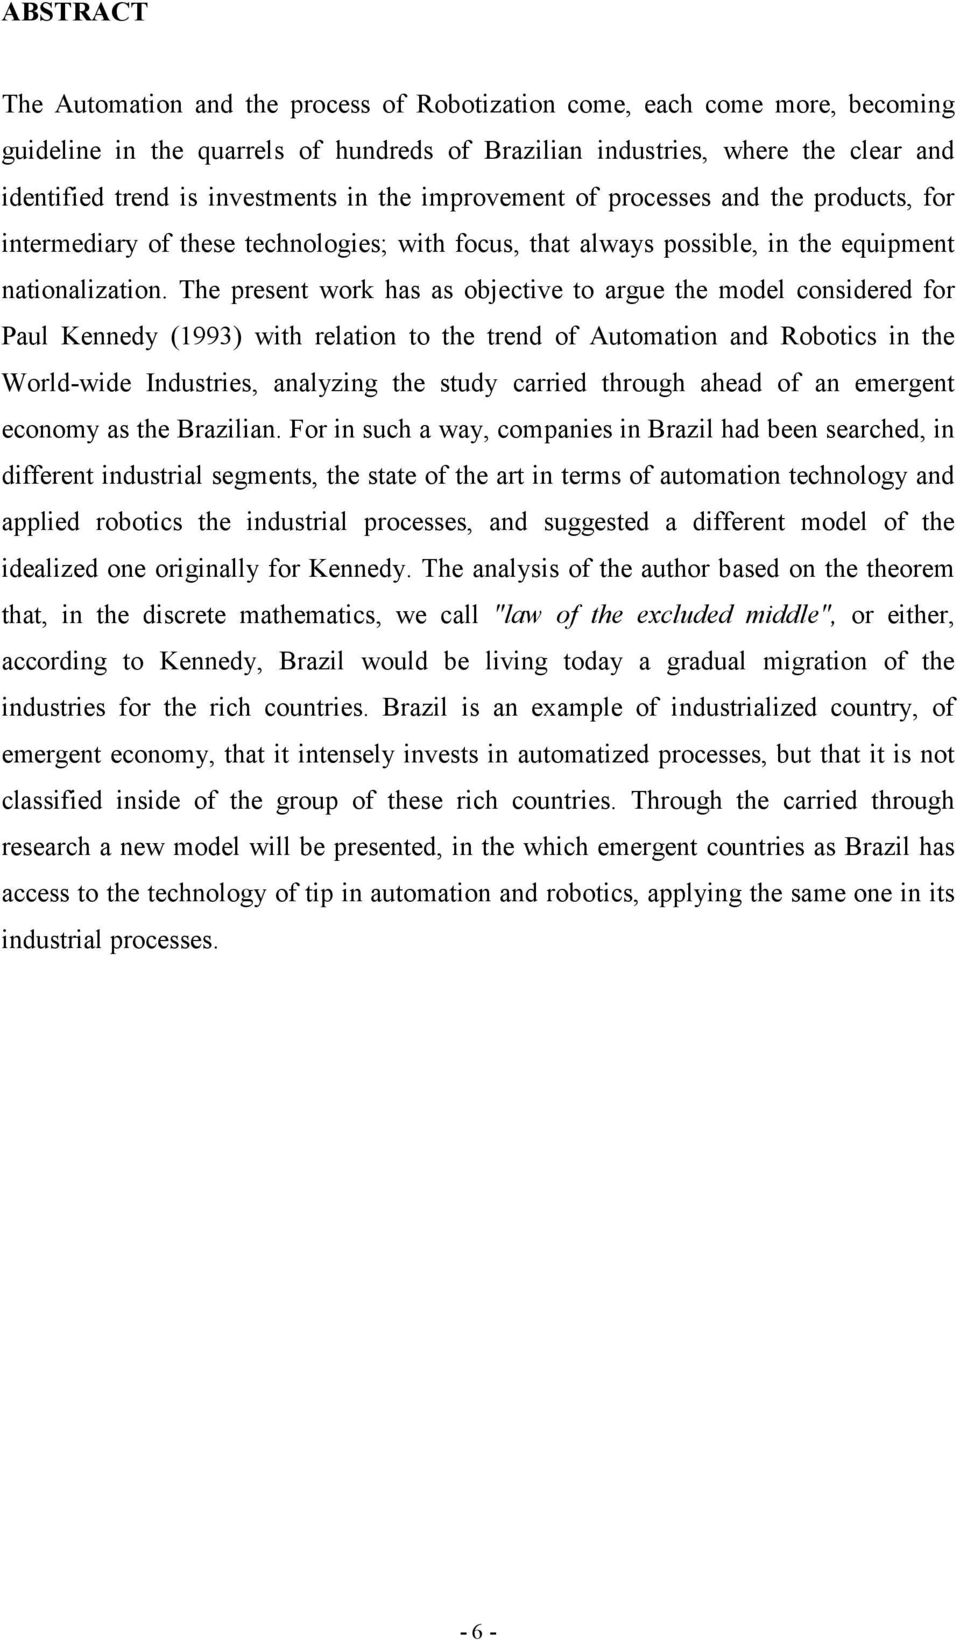 The present work has as objective to argue the model considered for Paul Kennedy (1993) with relation to the trend of Automation and Robotics in the World-wide Industries, analyzing the study carried